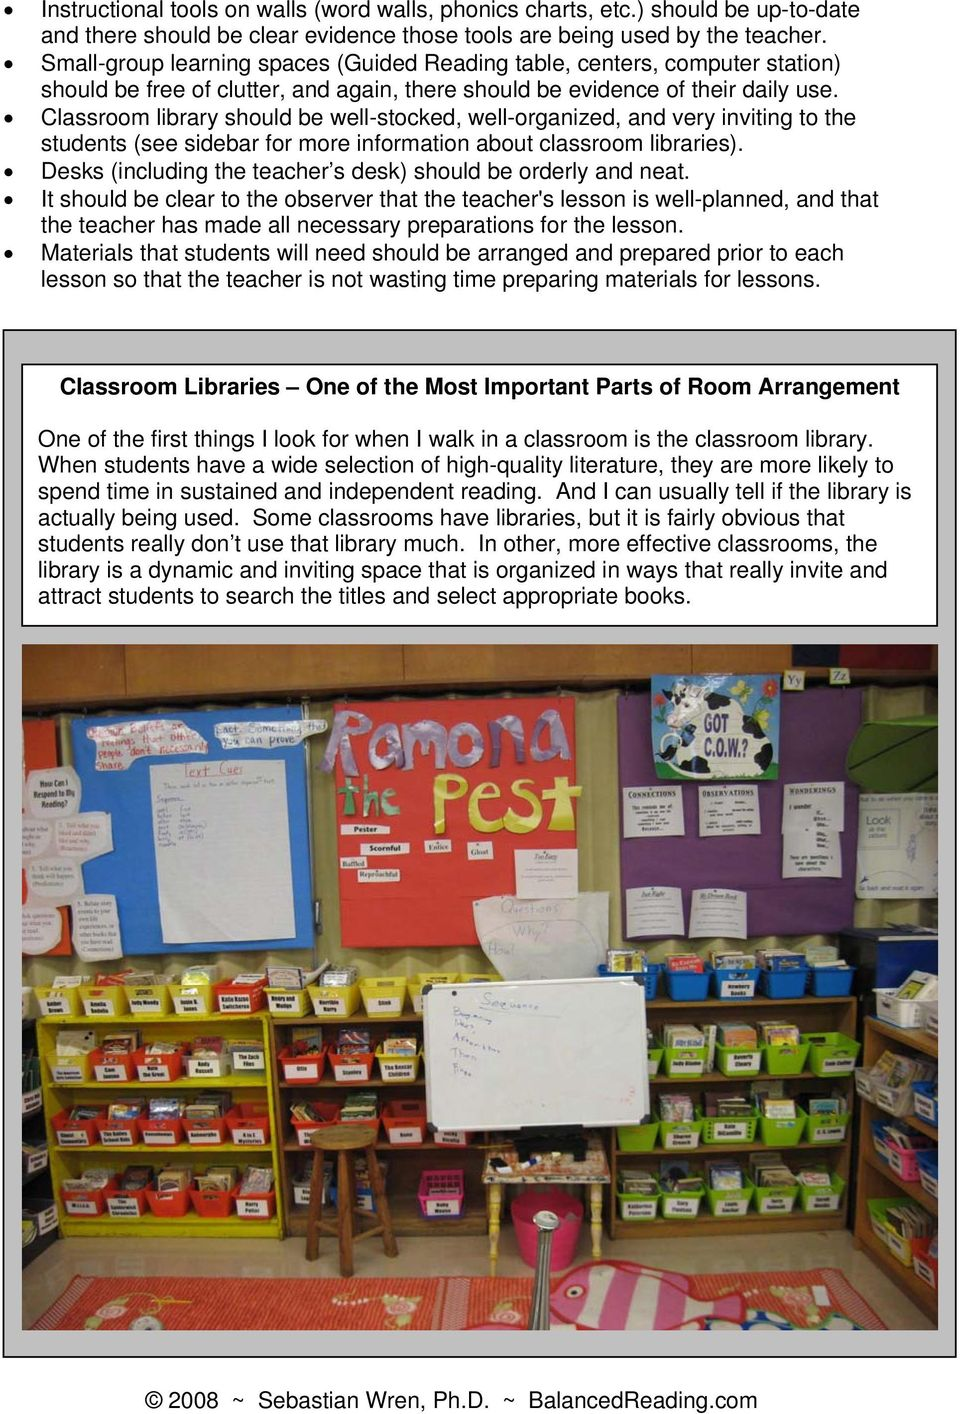 Classroom library should be well-stocked, well-organized, and very inviting to the students (see sidebar for more information about classroom libraries).